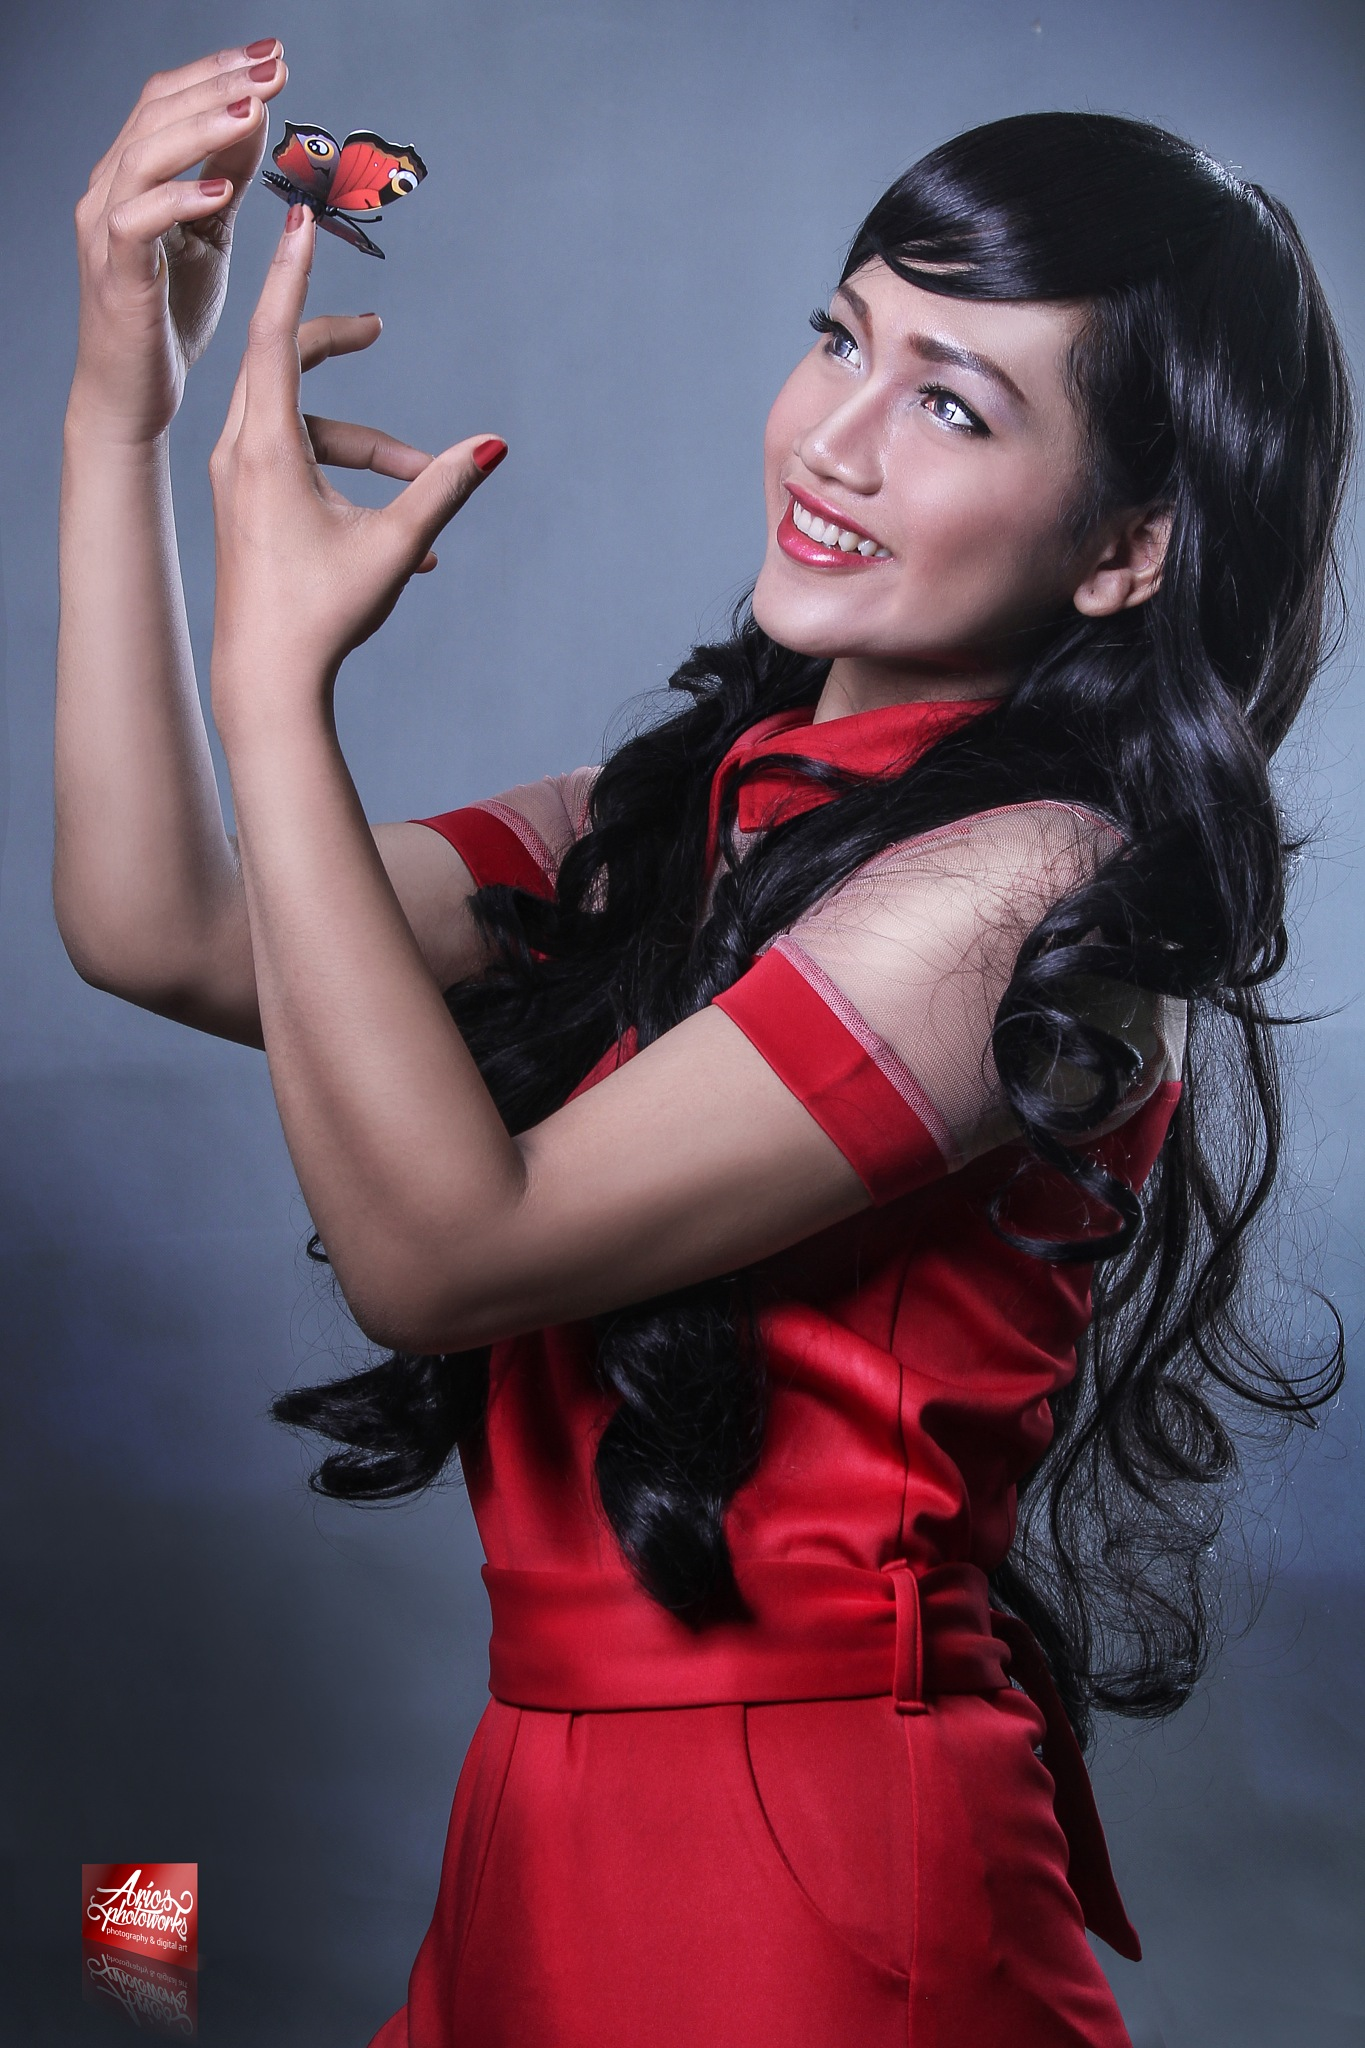 red dress by ario photowork